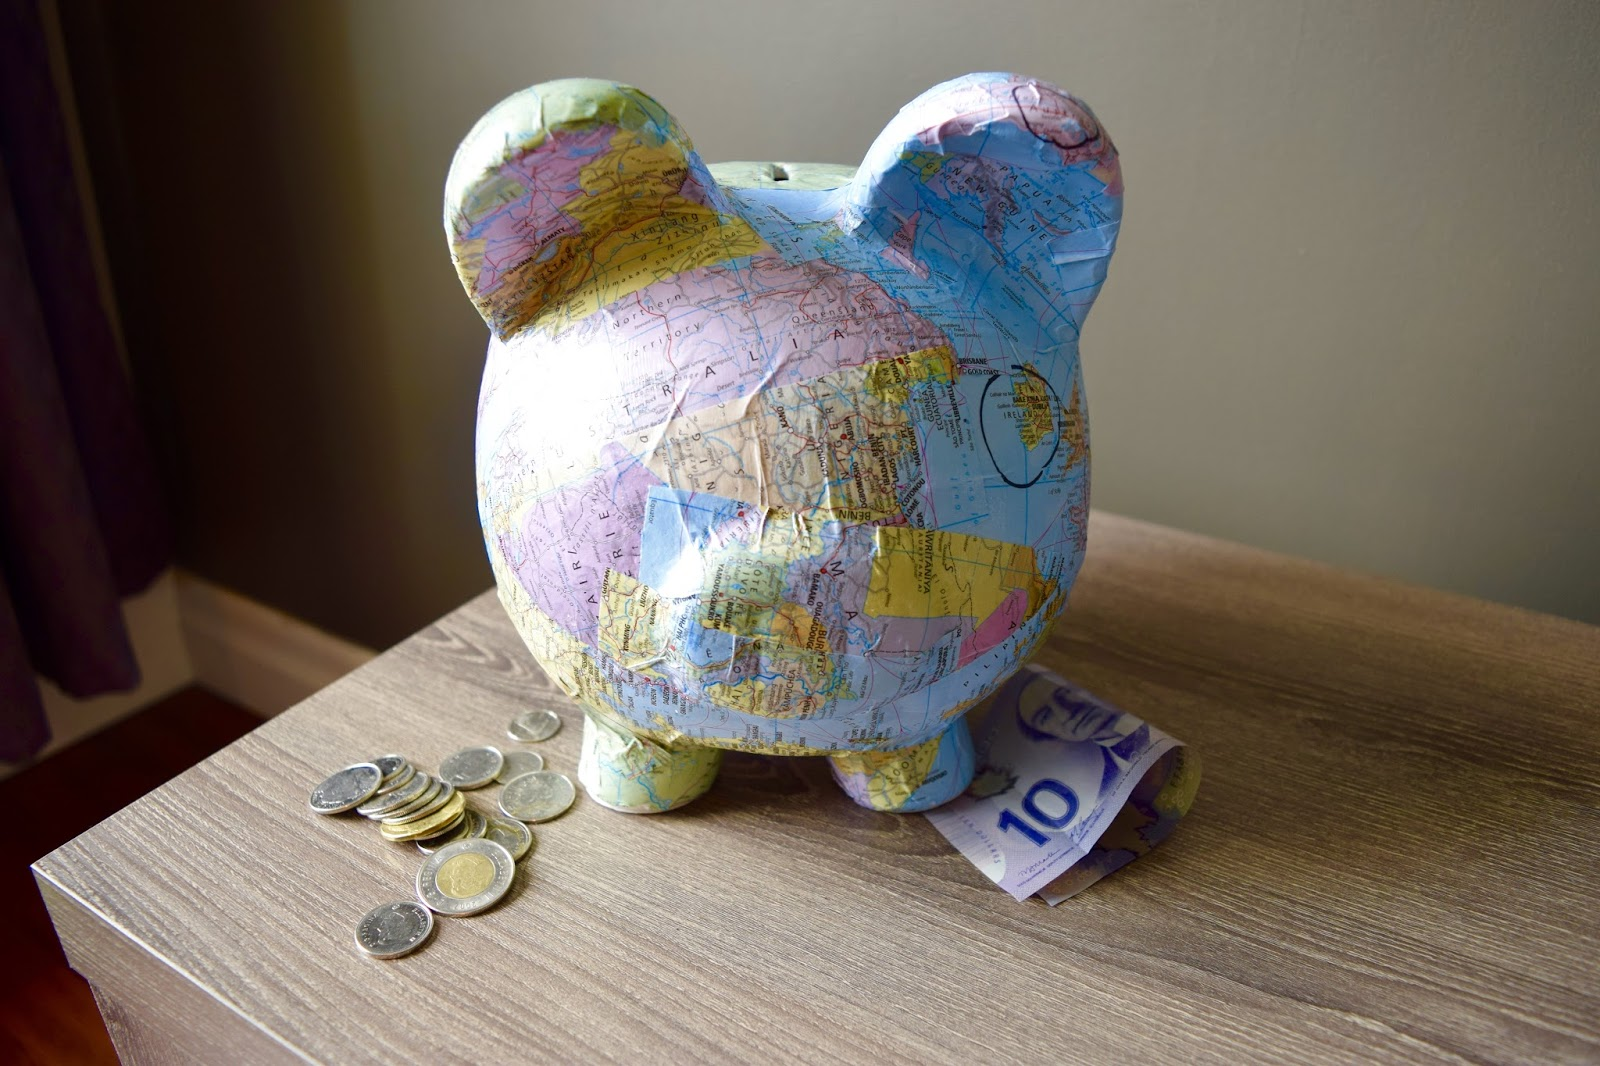 Project seasonal travel fund piggy bank for Travel fund piggy bank